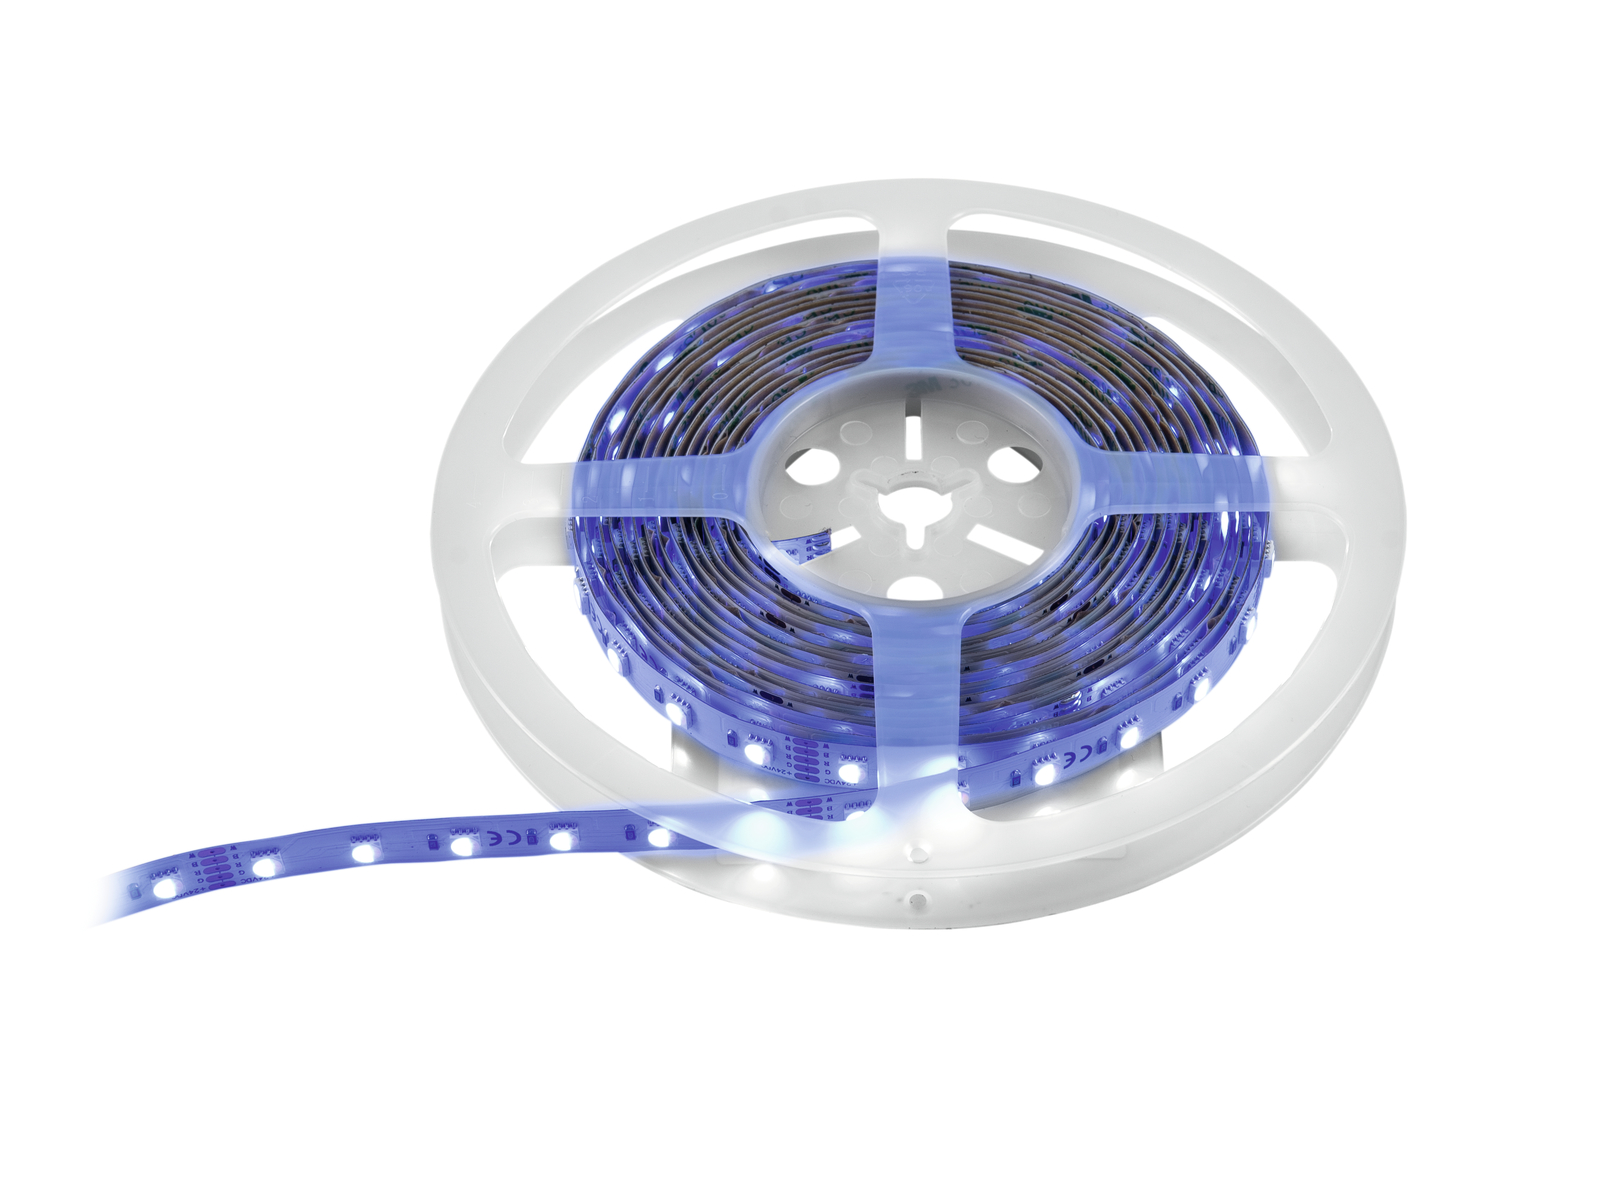 EUROLITE LED Strip 5m 300 RGBWW 24V